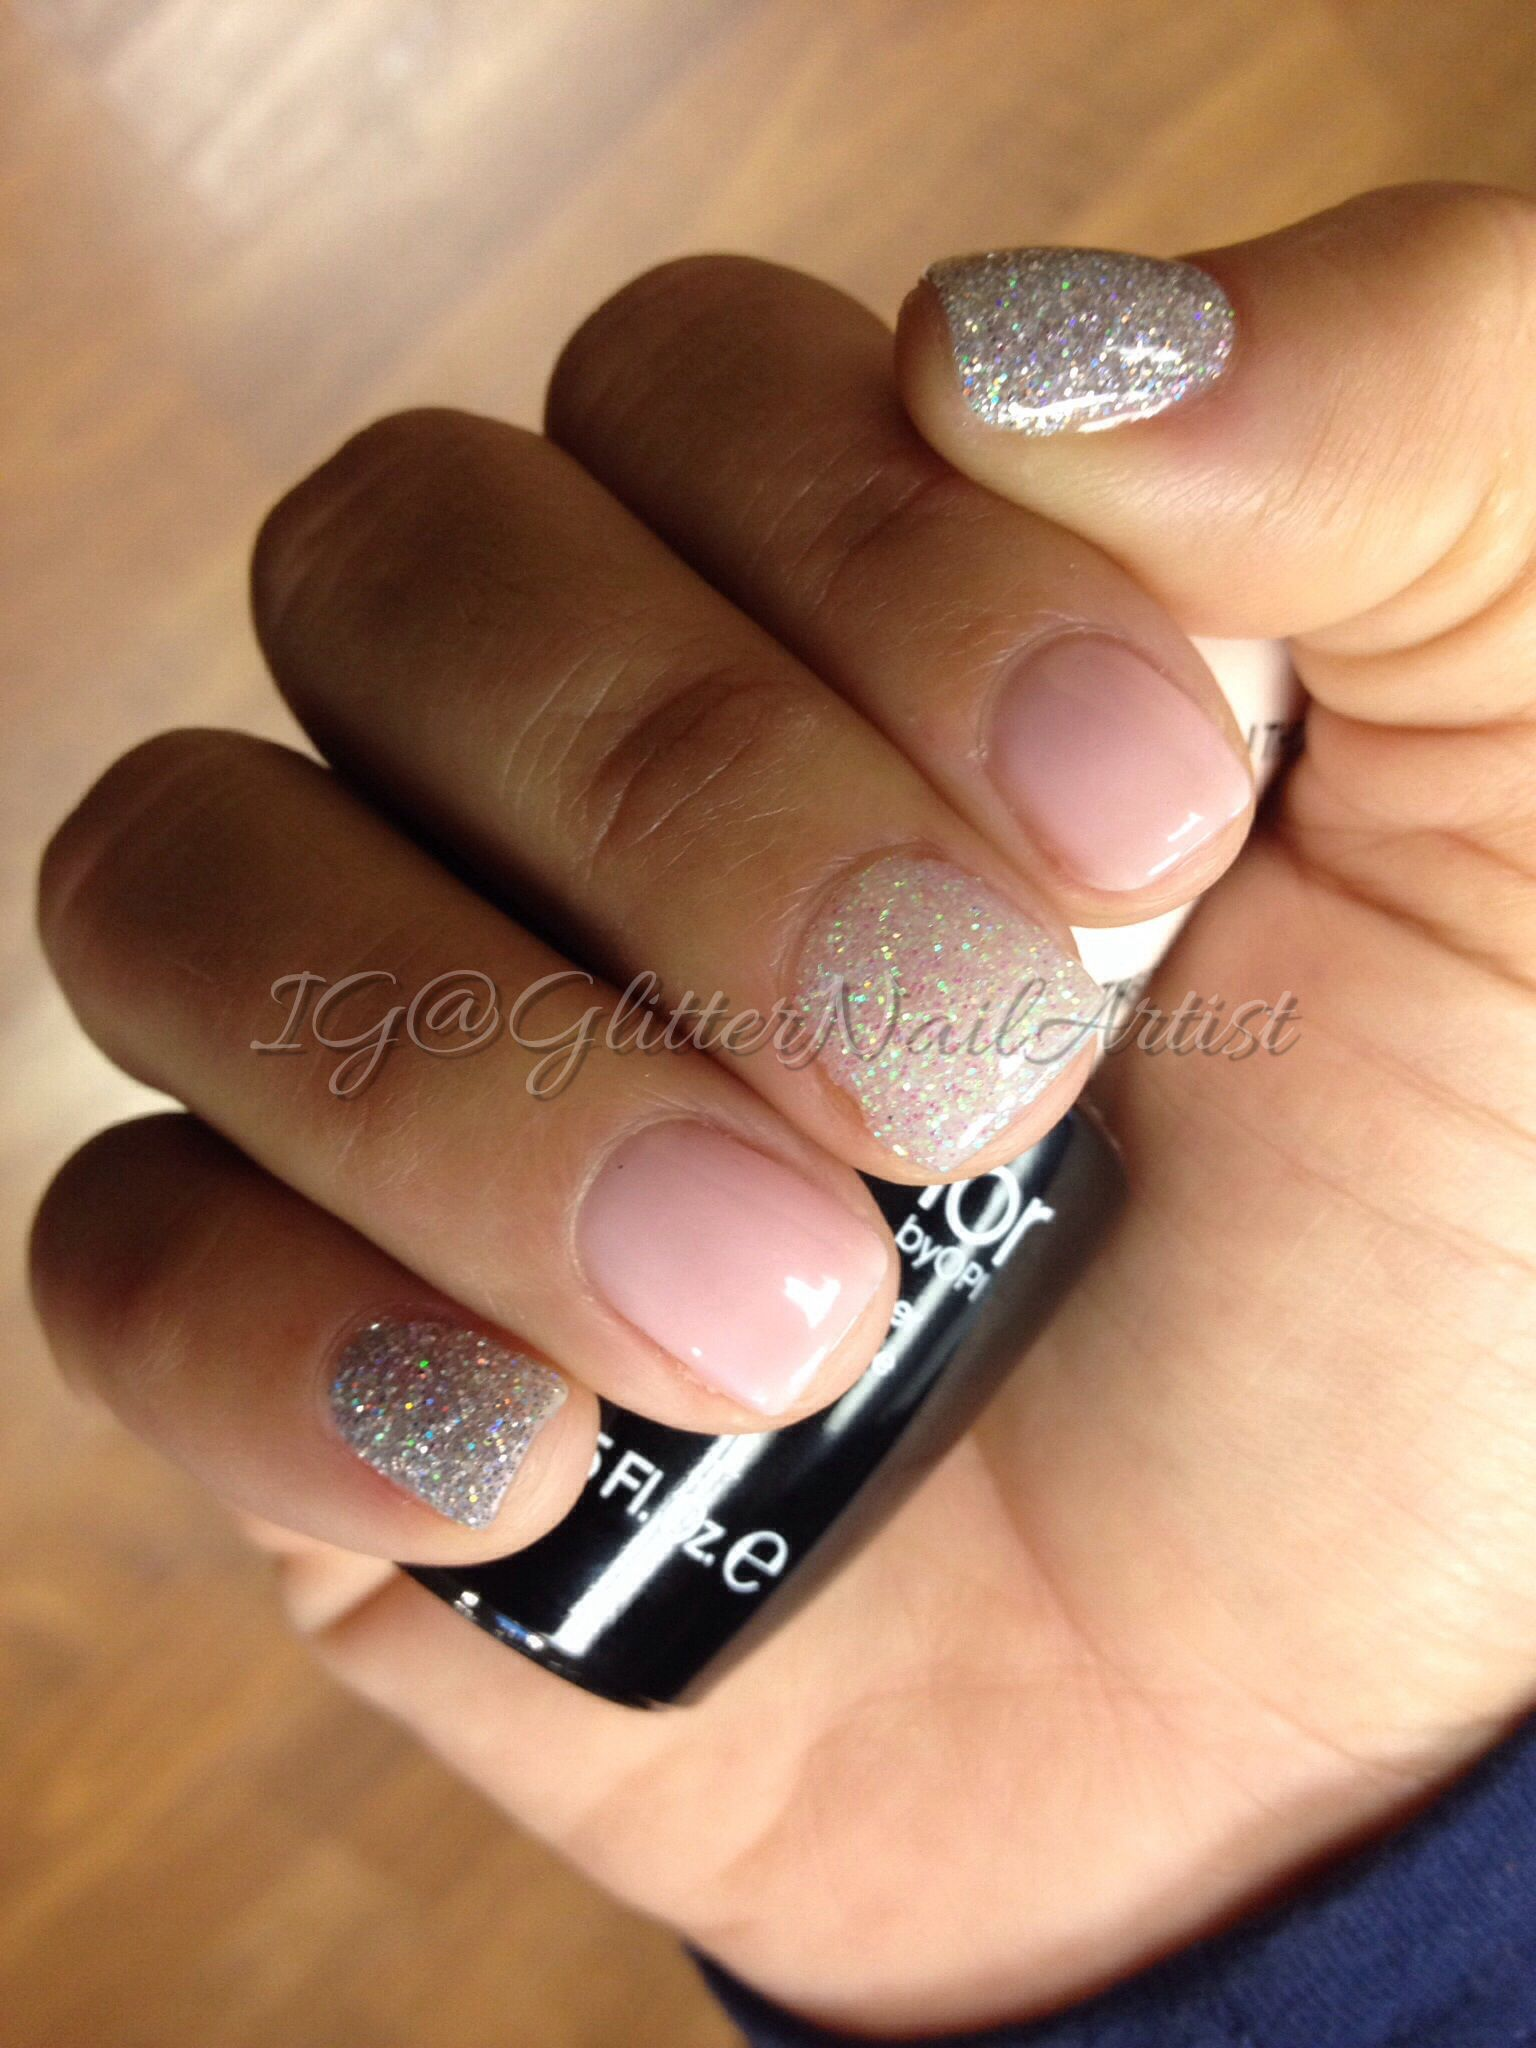 Nails: Short, gel manicure, clear with just a touch of glitter ...